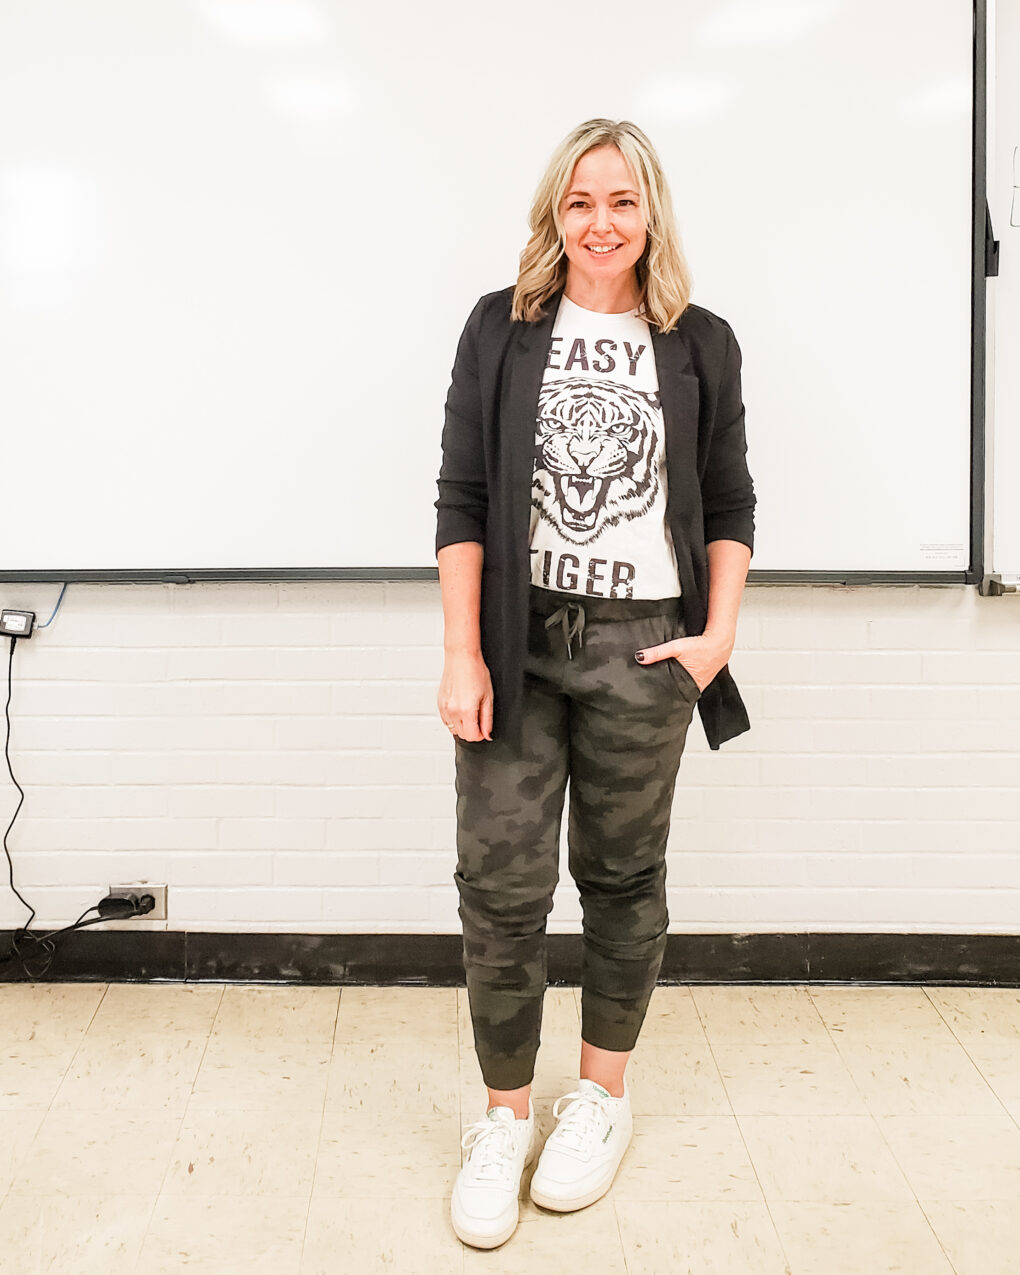 Casual teacher outfit with a black boyfriend knit blazer, graphic tee, camo joggers, and white sneakers